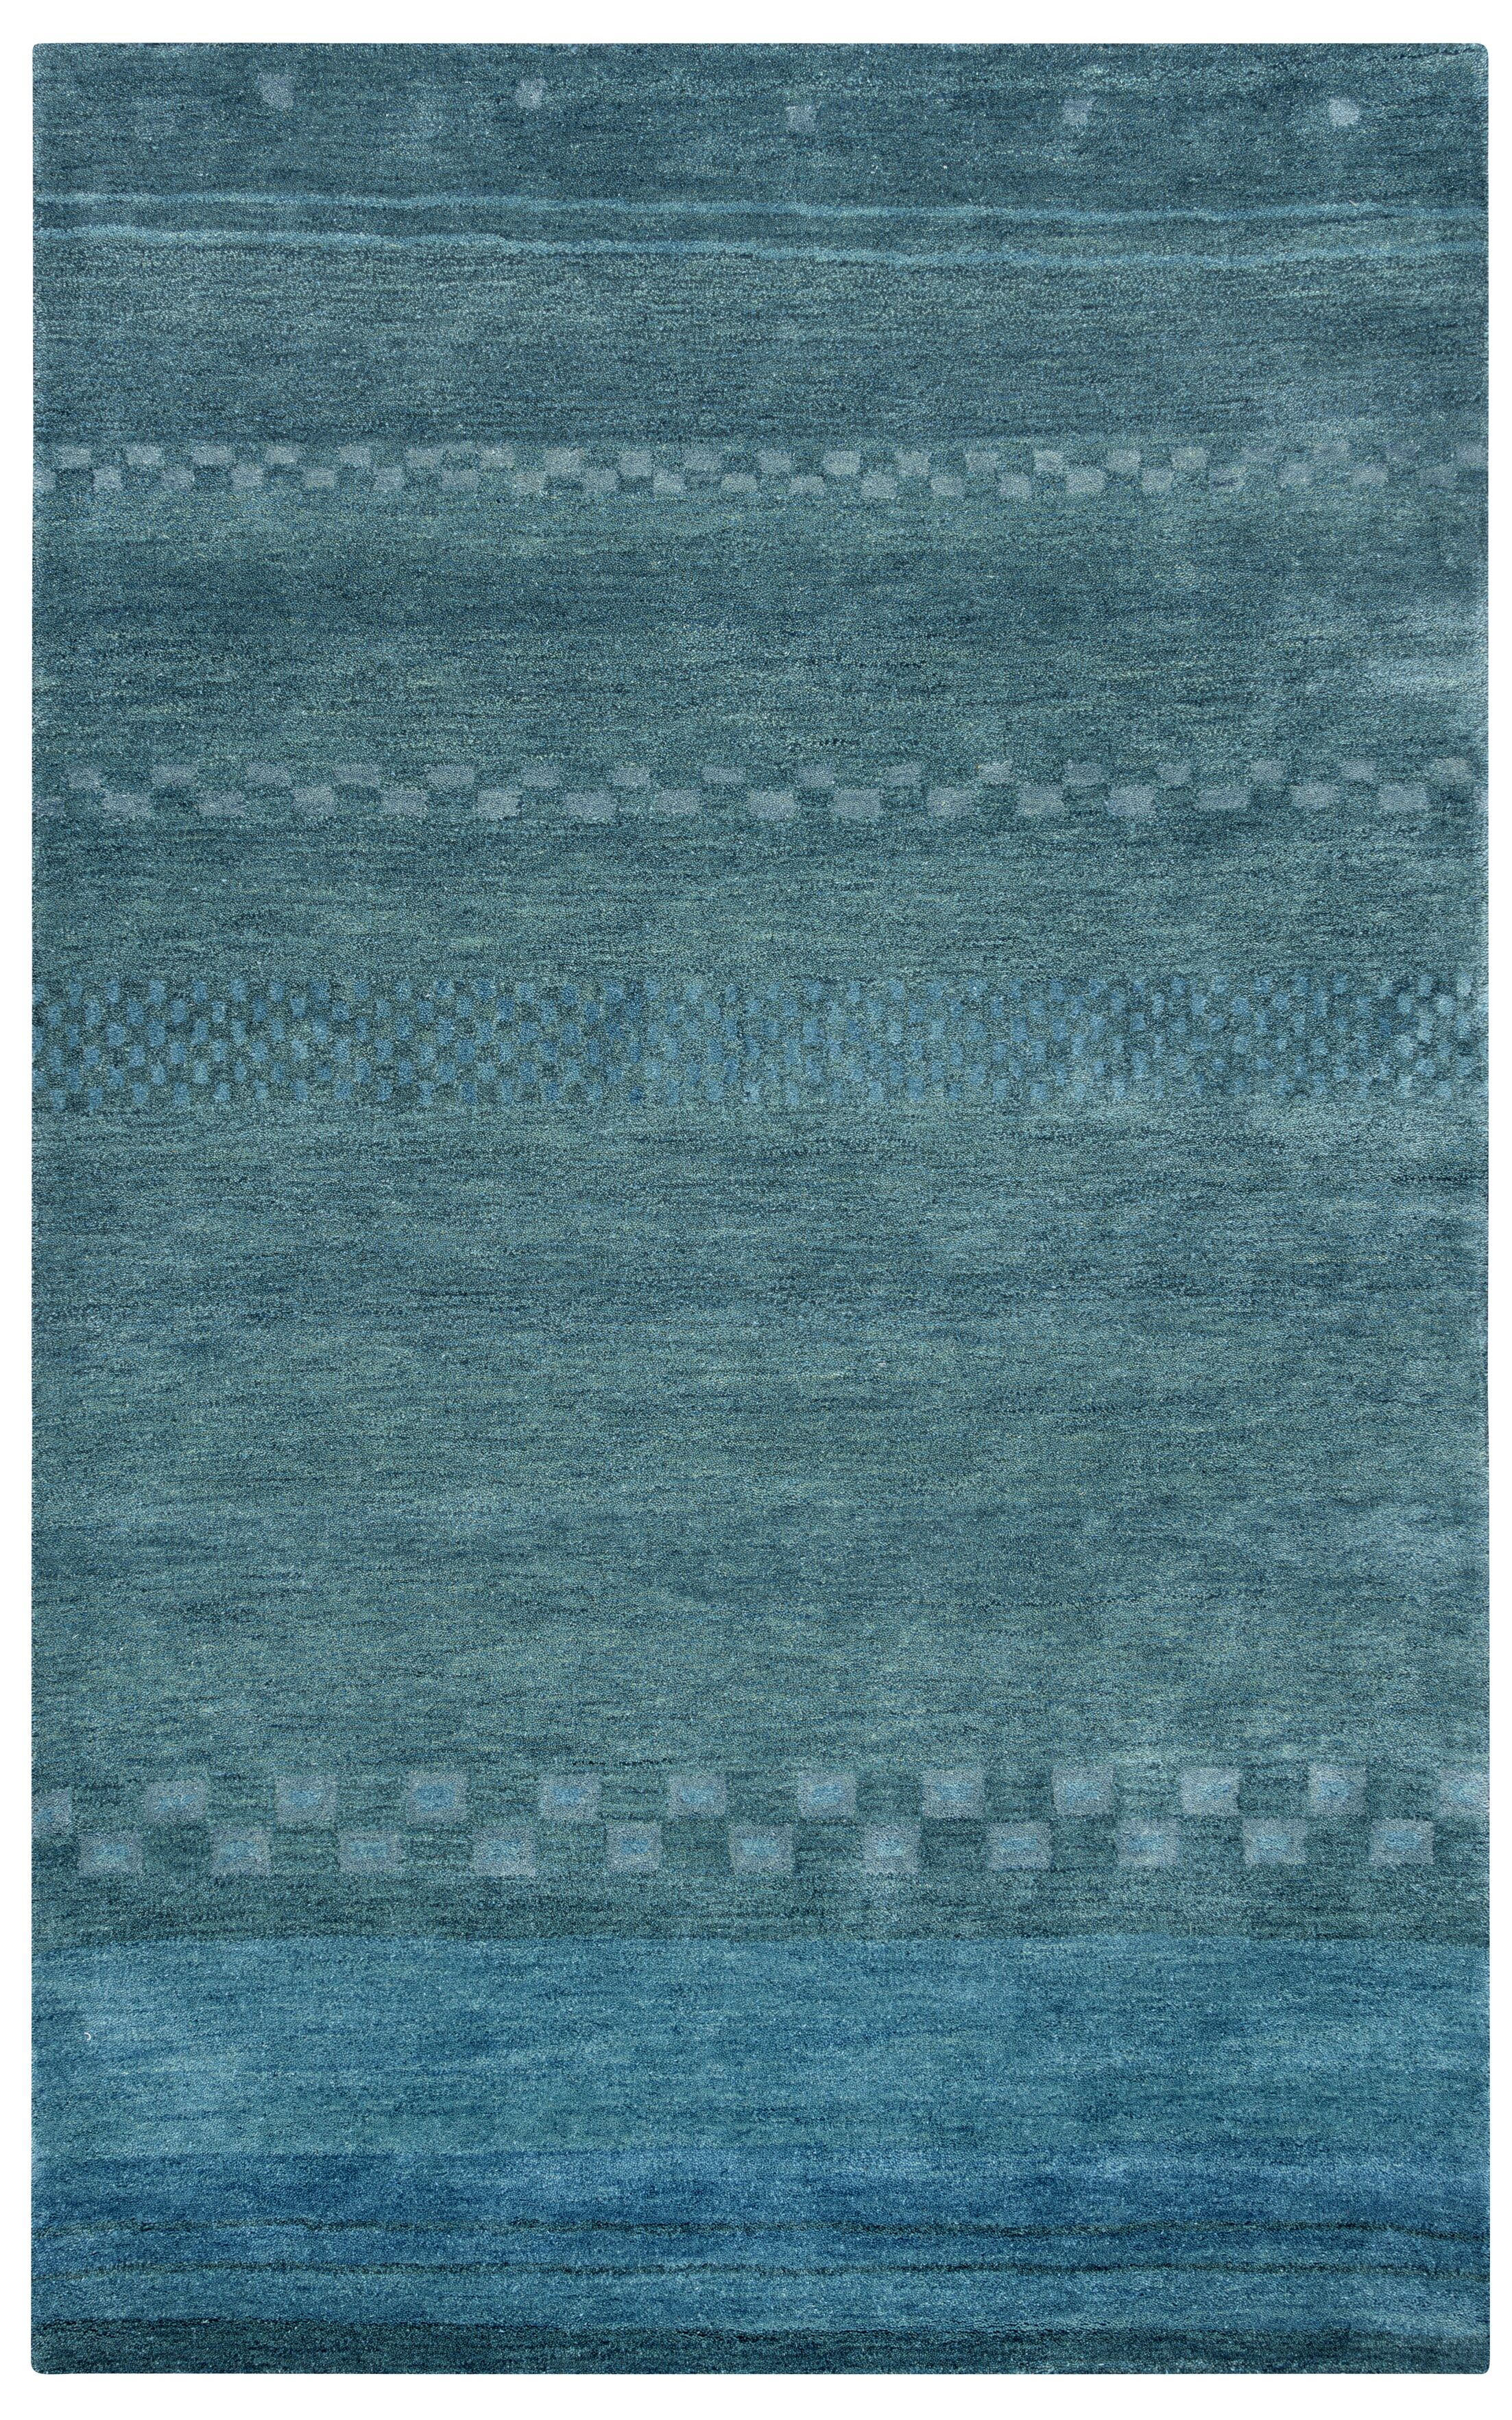 Barranquilla Hand-Tufted Blue Area Rug Rug Size: Rectangle 8' x 10'